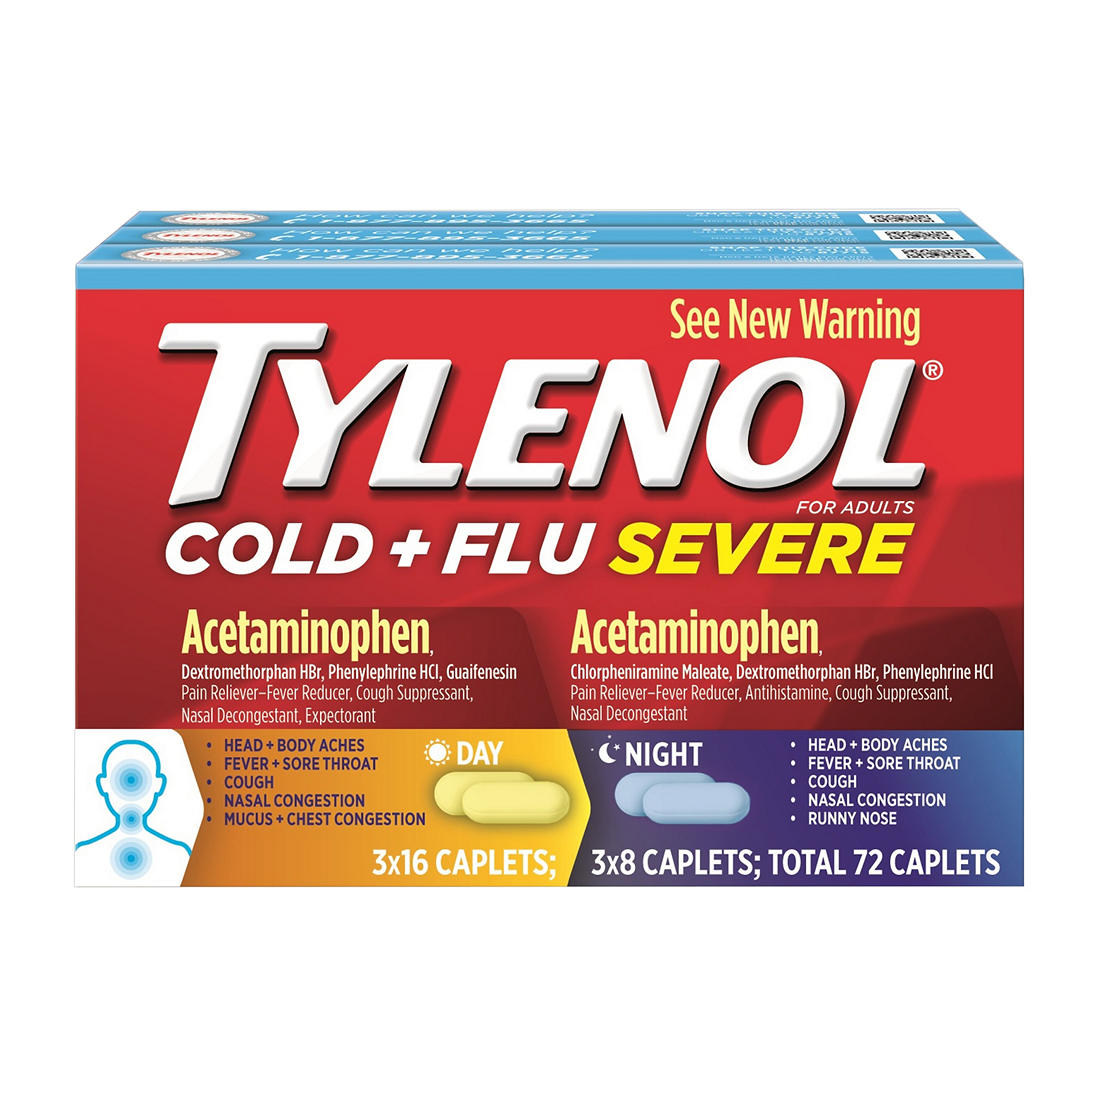 graphic regarding Tylenol Printable Coupon called Tylenol Chilly Flu Major Working day/Evening Caplets, 3 Pk./24 Ct.